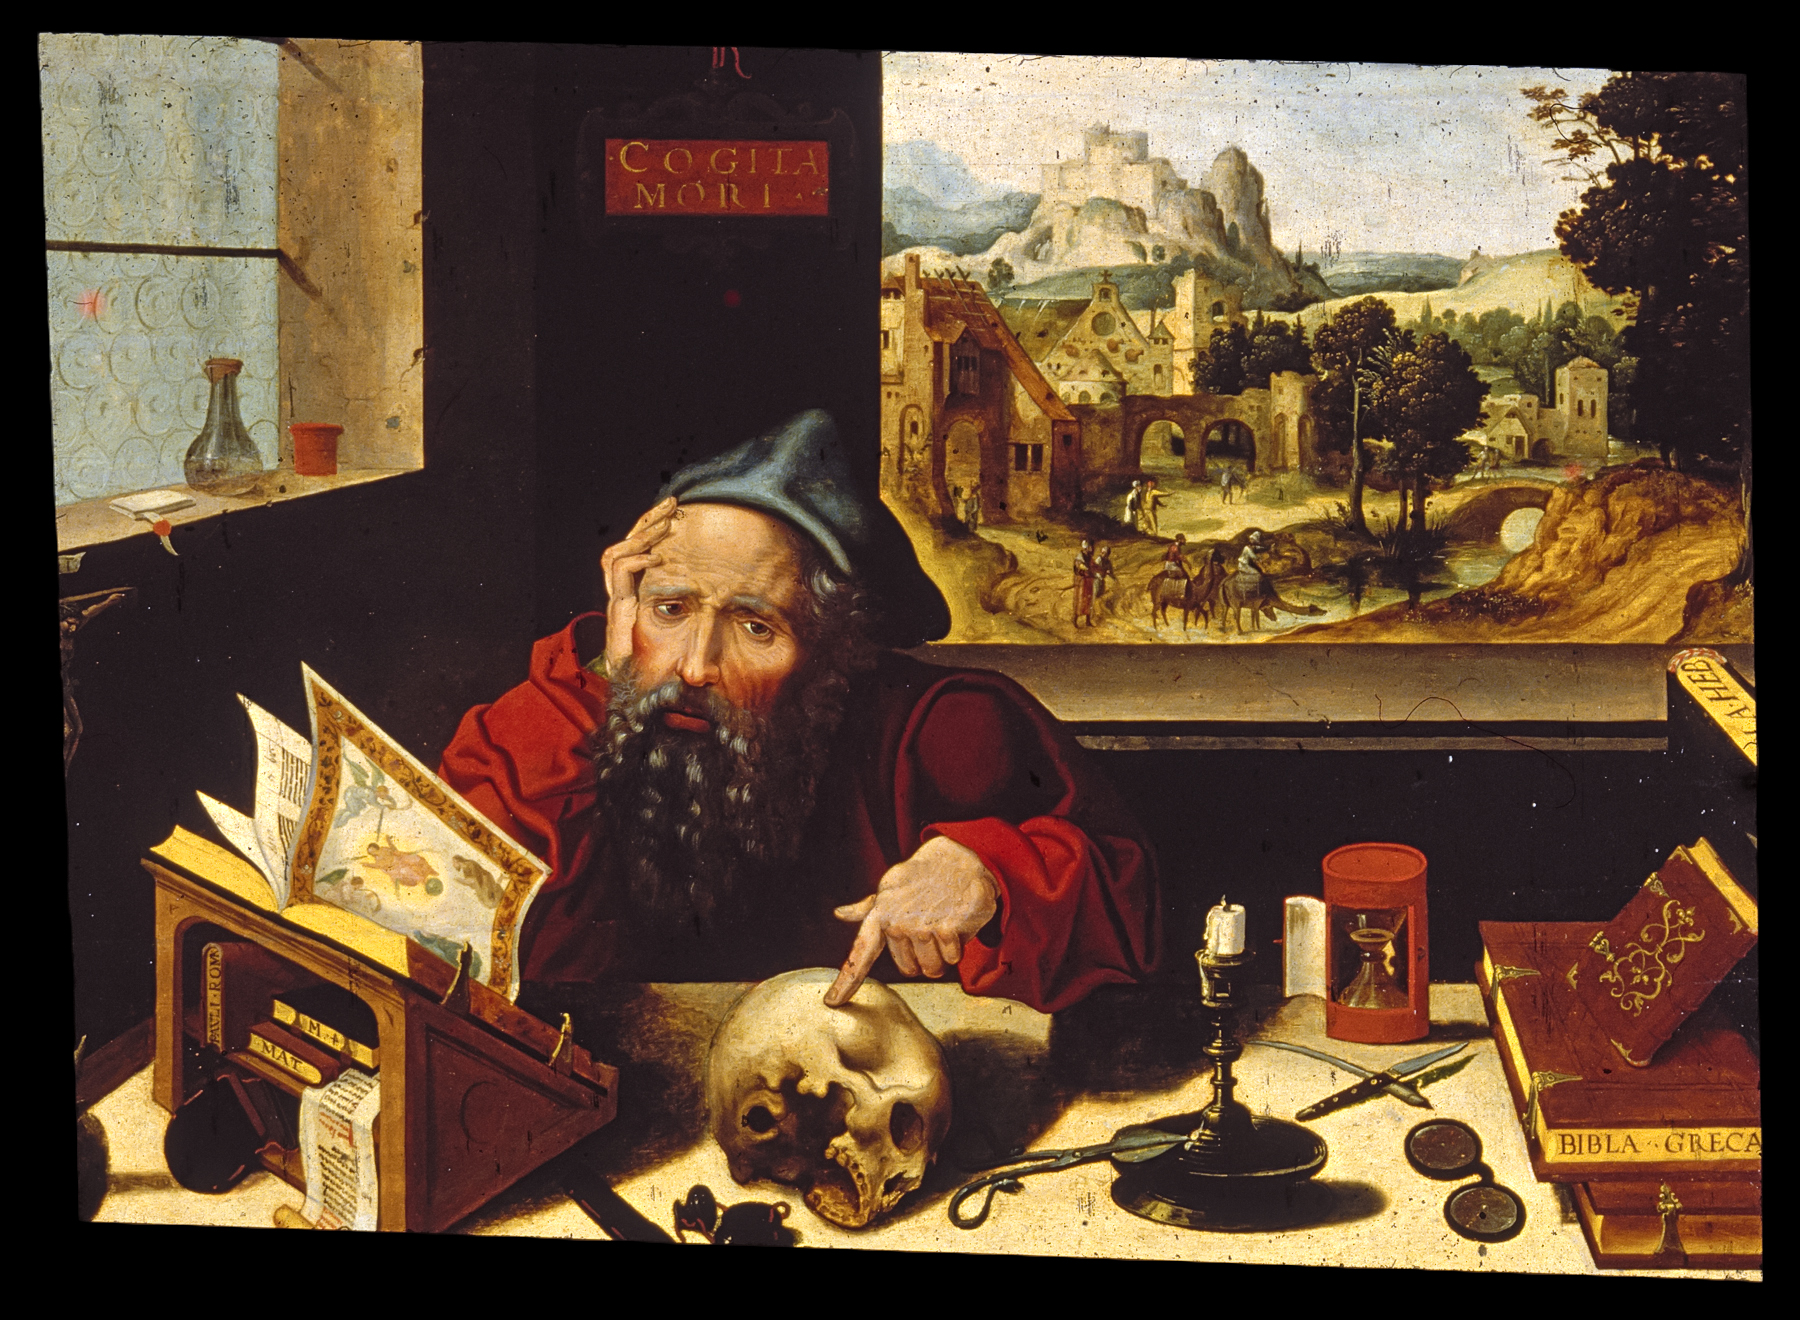 This painting by the Workshop of Pieter Coecke van Aelst depicts St. Jerome in his study. The Walters Art Museum.